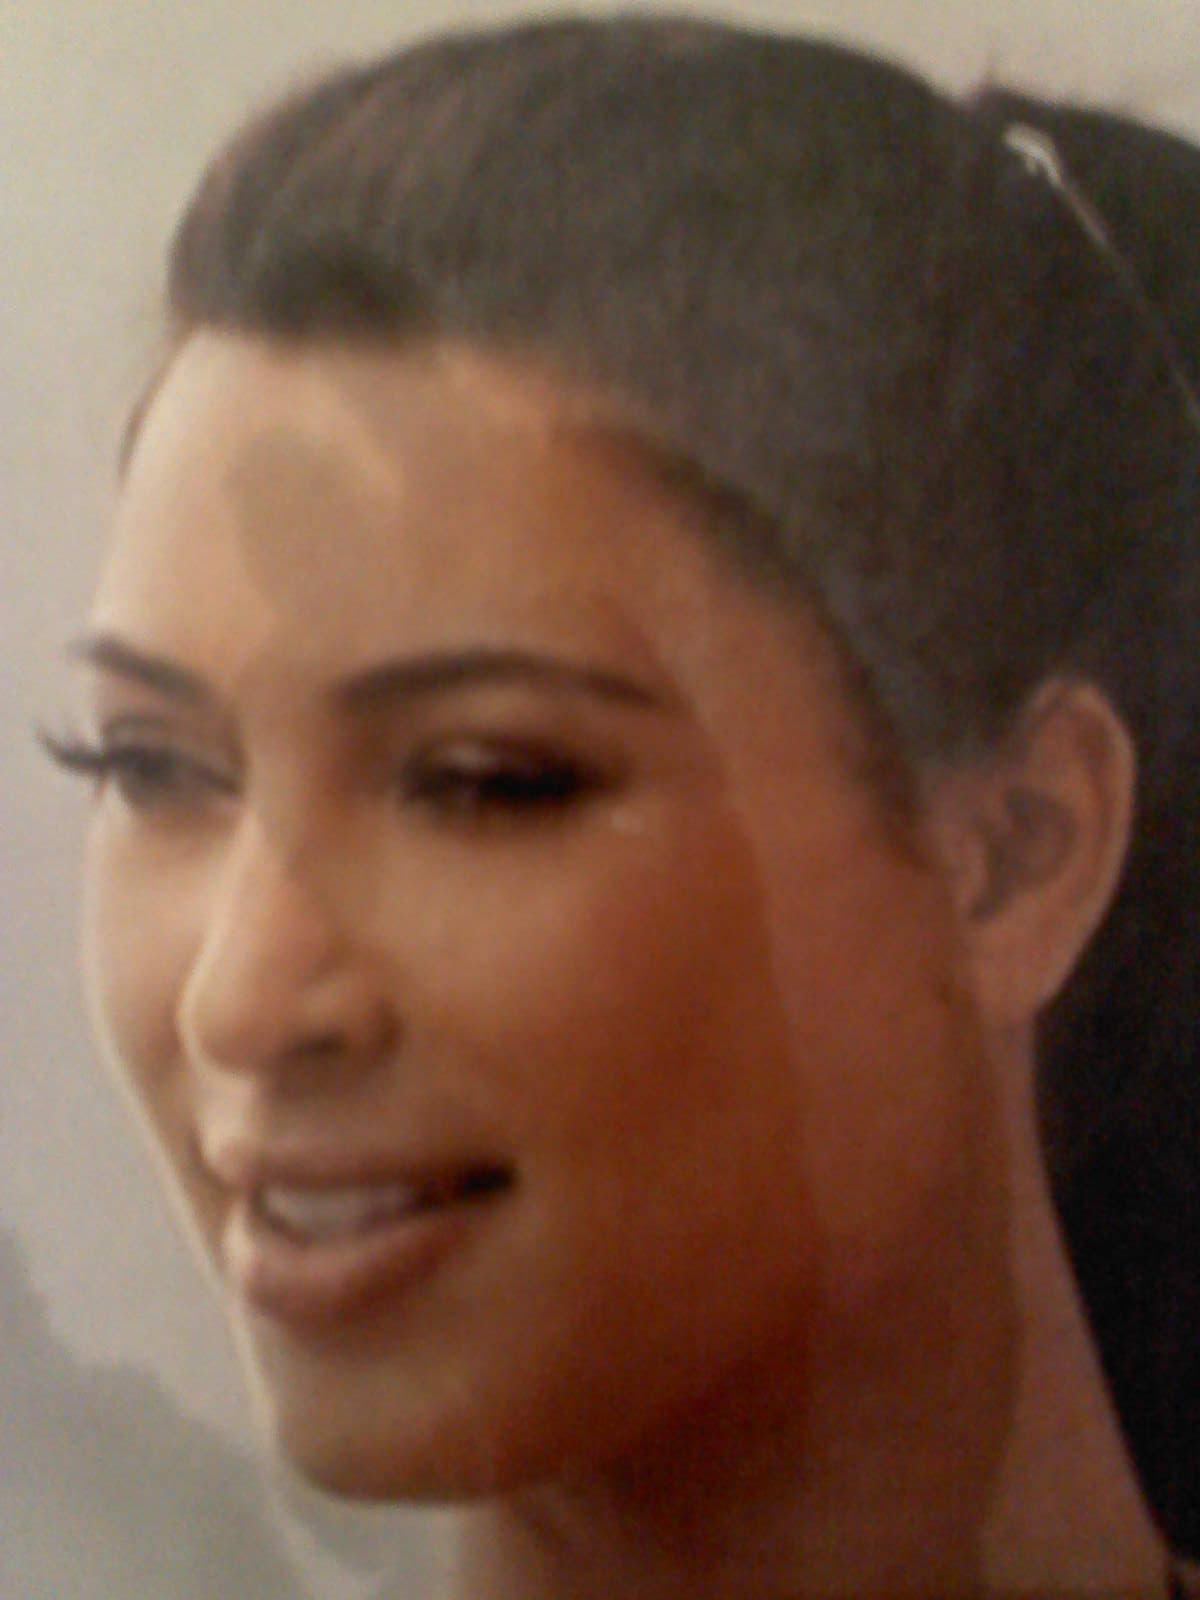 Kim Kardashian After face 2.jpg